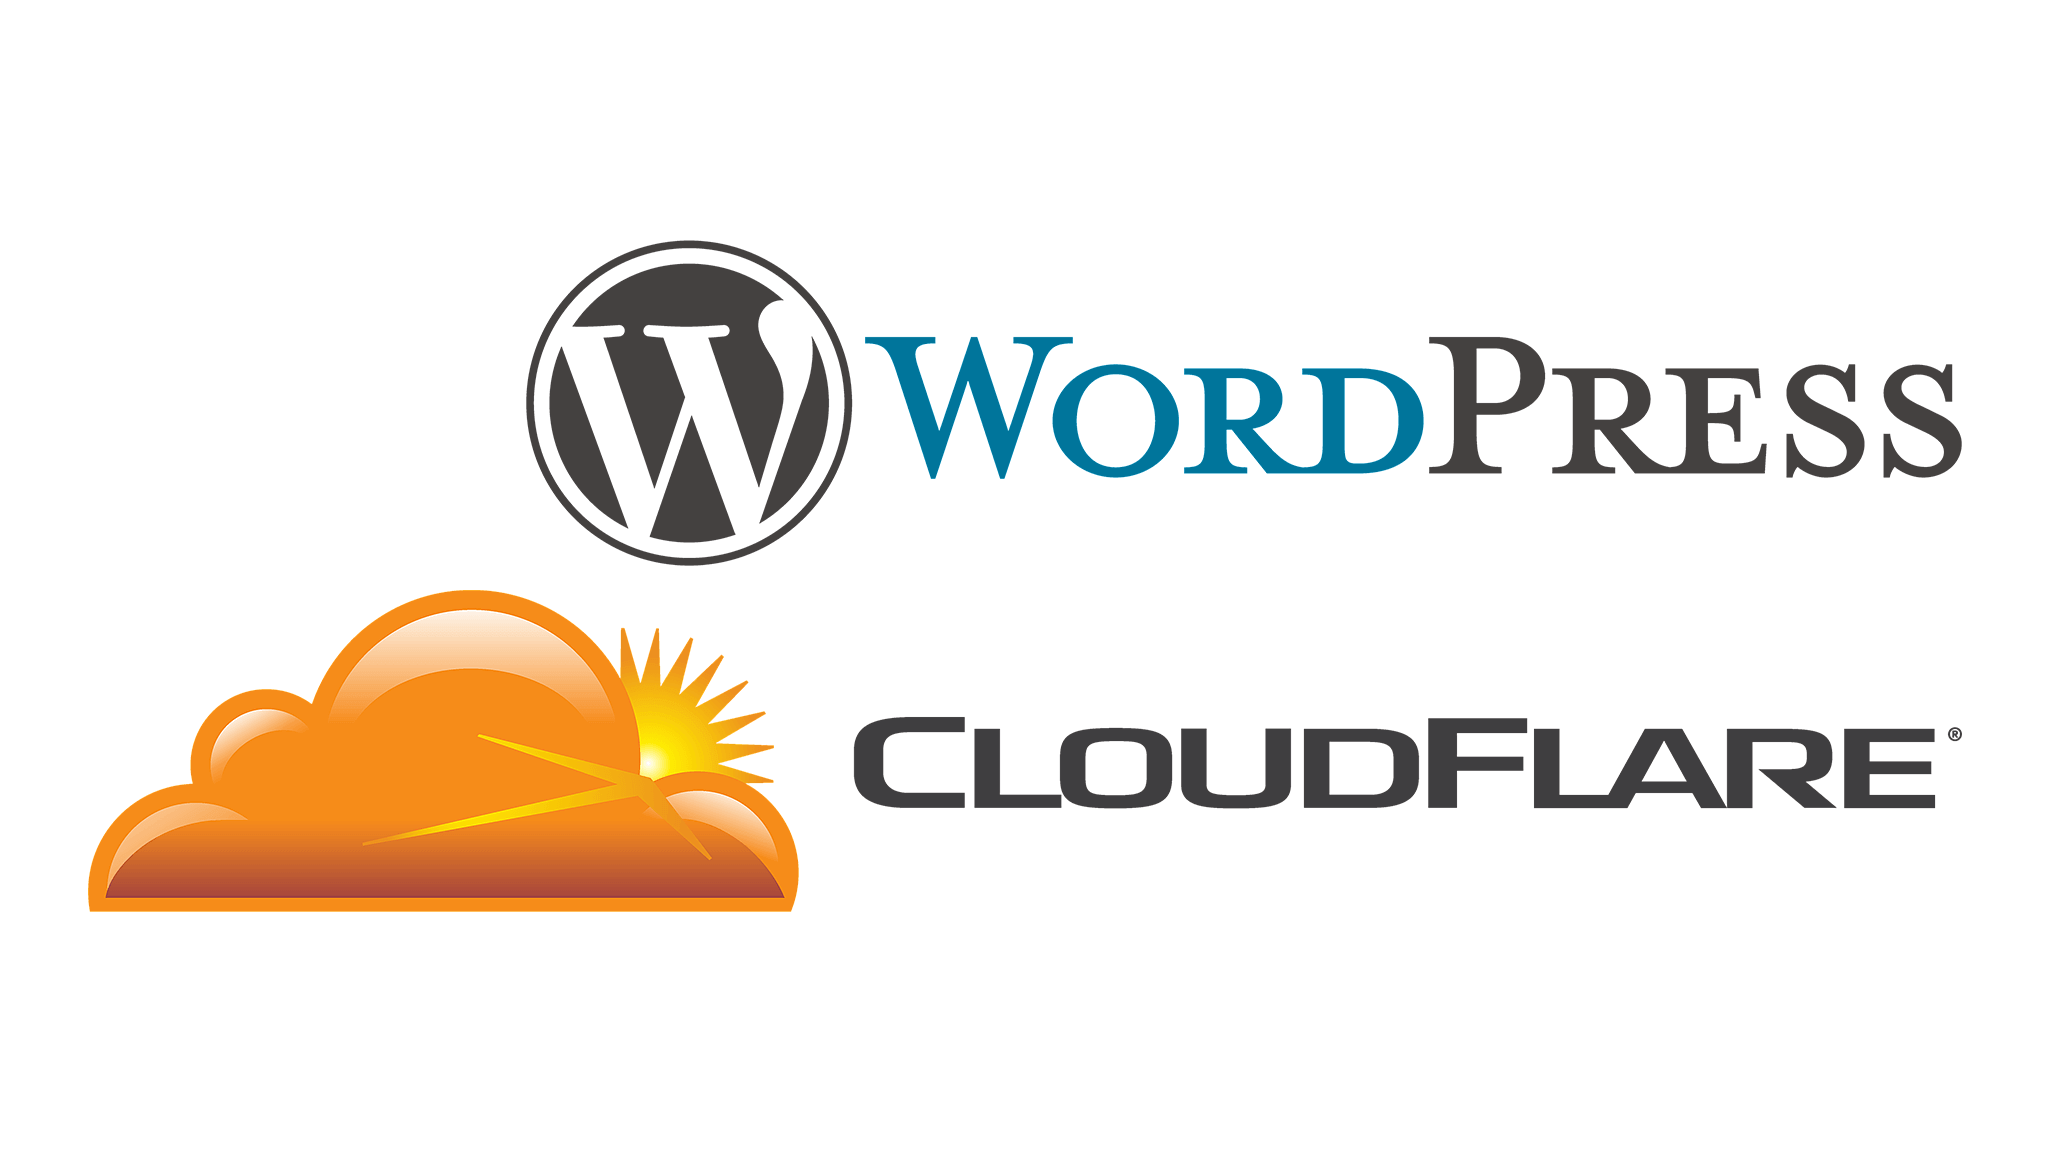 How to Setup CloudFlare Free CDN in WordPress site?